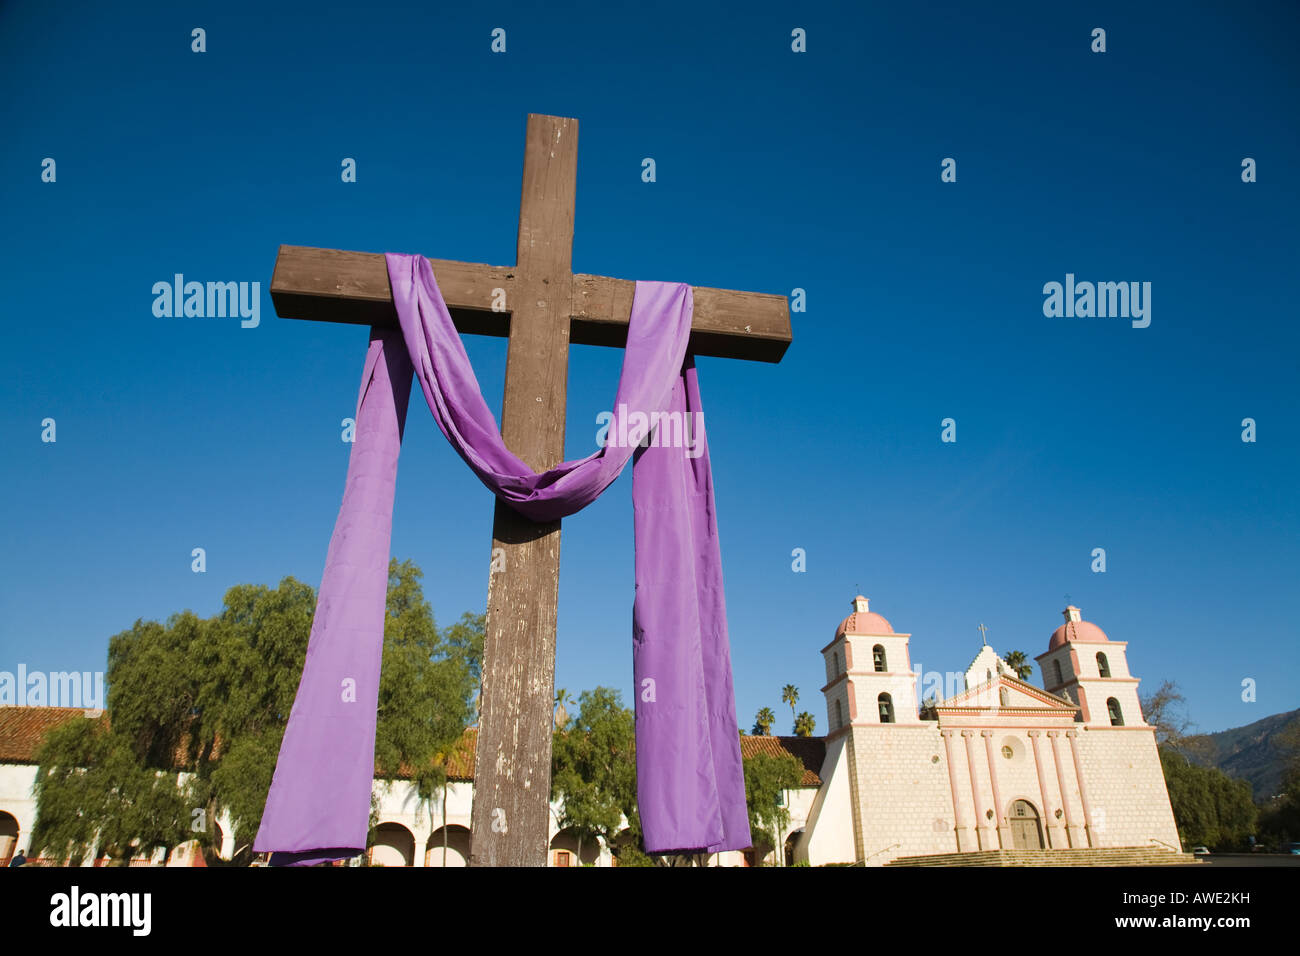 CALIFORNIA Santa Barbara Cross draped in purple for lent Mission Santa Barbara established by Padre Junipero Serra - Stock Image